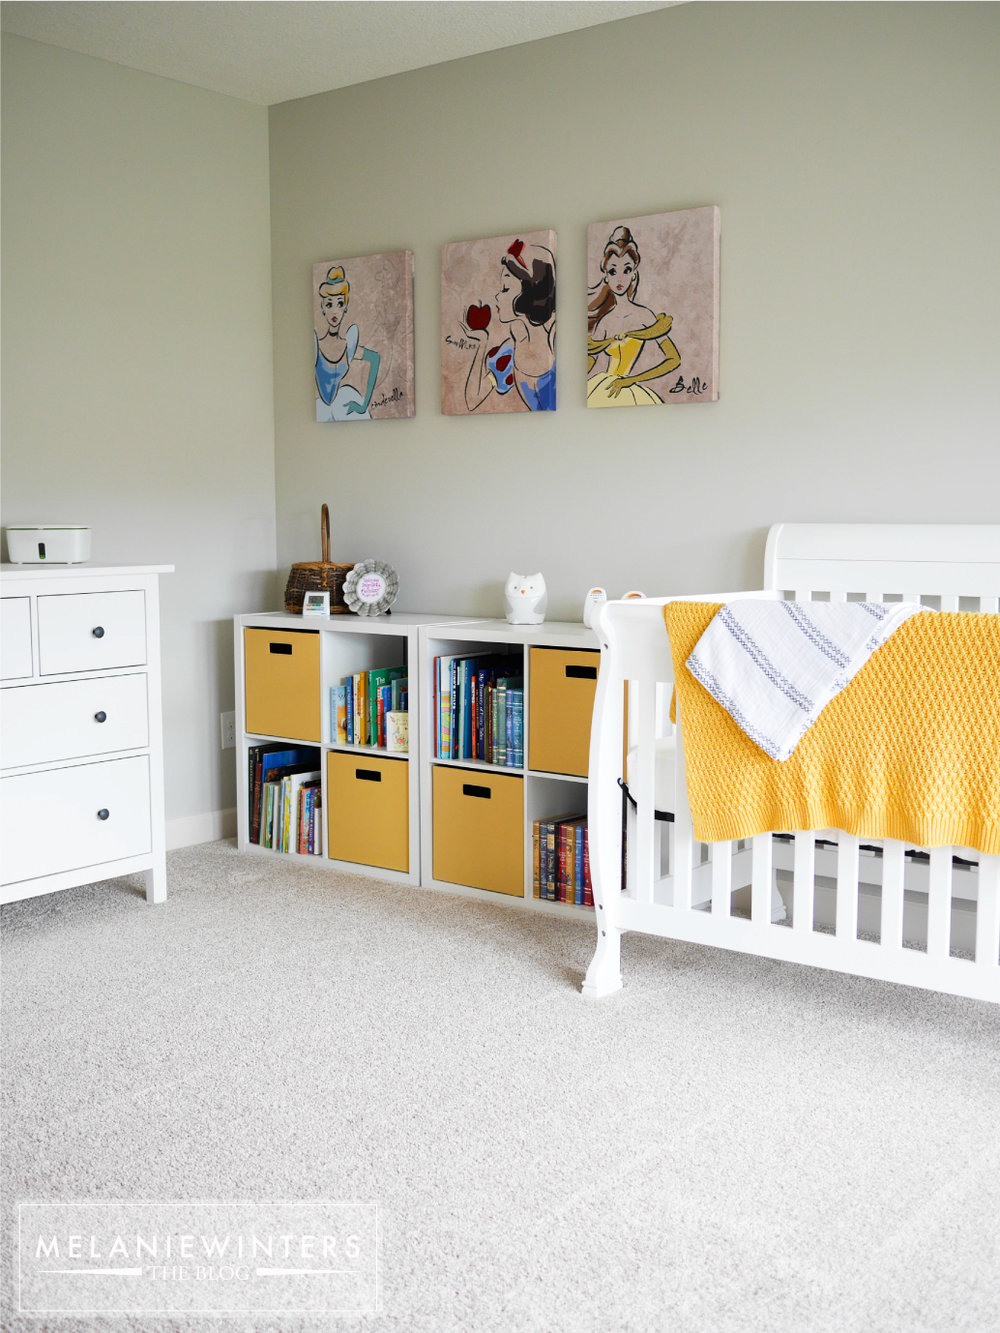 Crisp whites with a pop of yellow make this a nursery everyone enjoys spending time in.